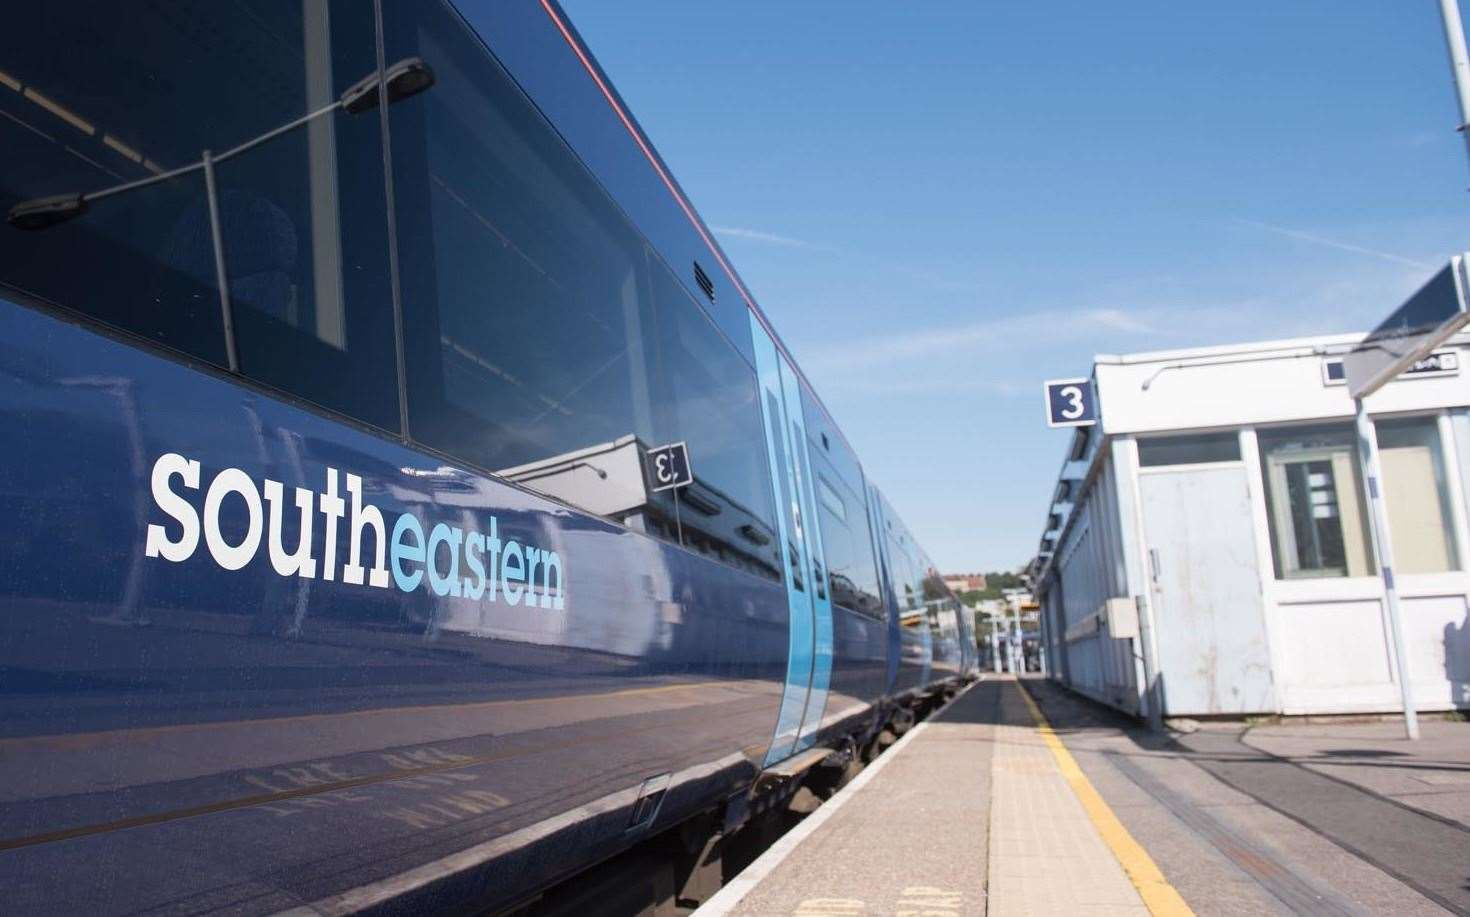 A Southeastern train. Stock picture (11855545)